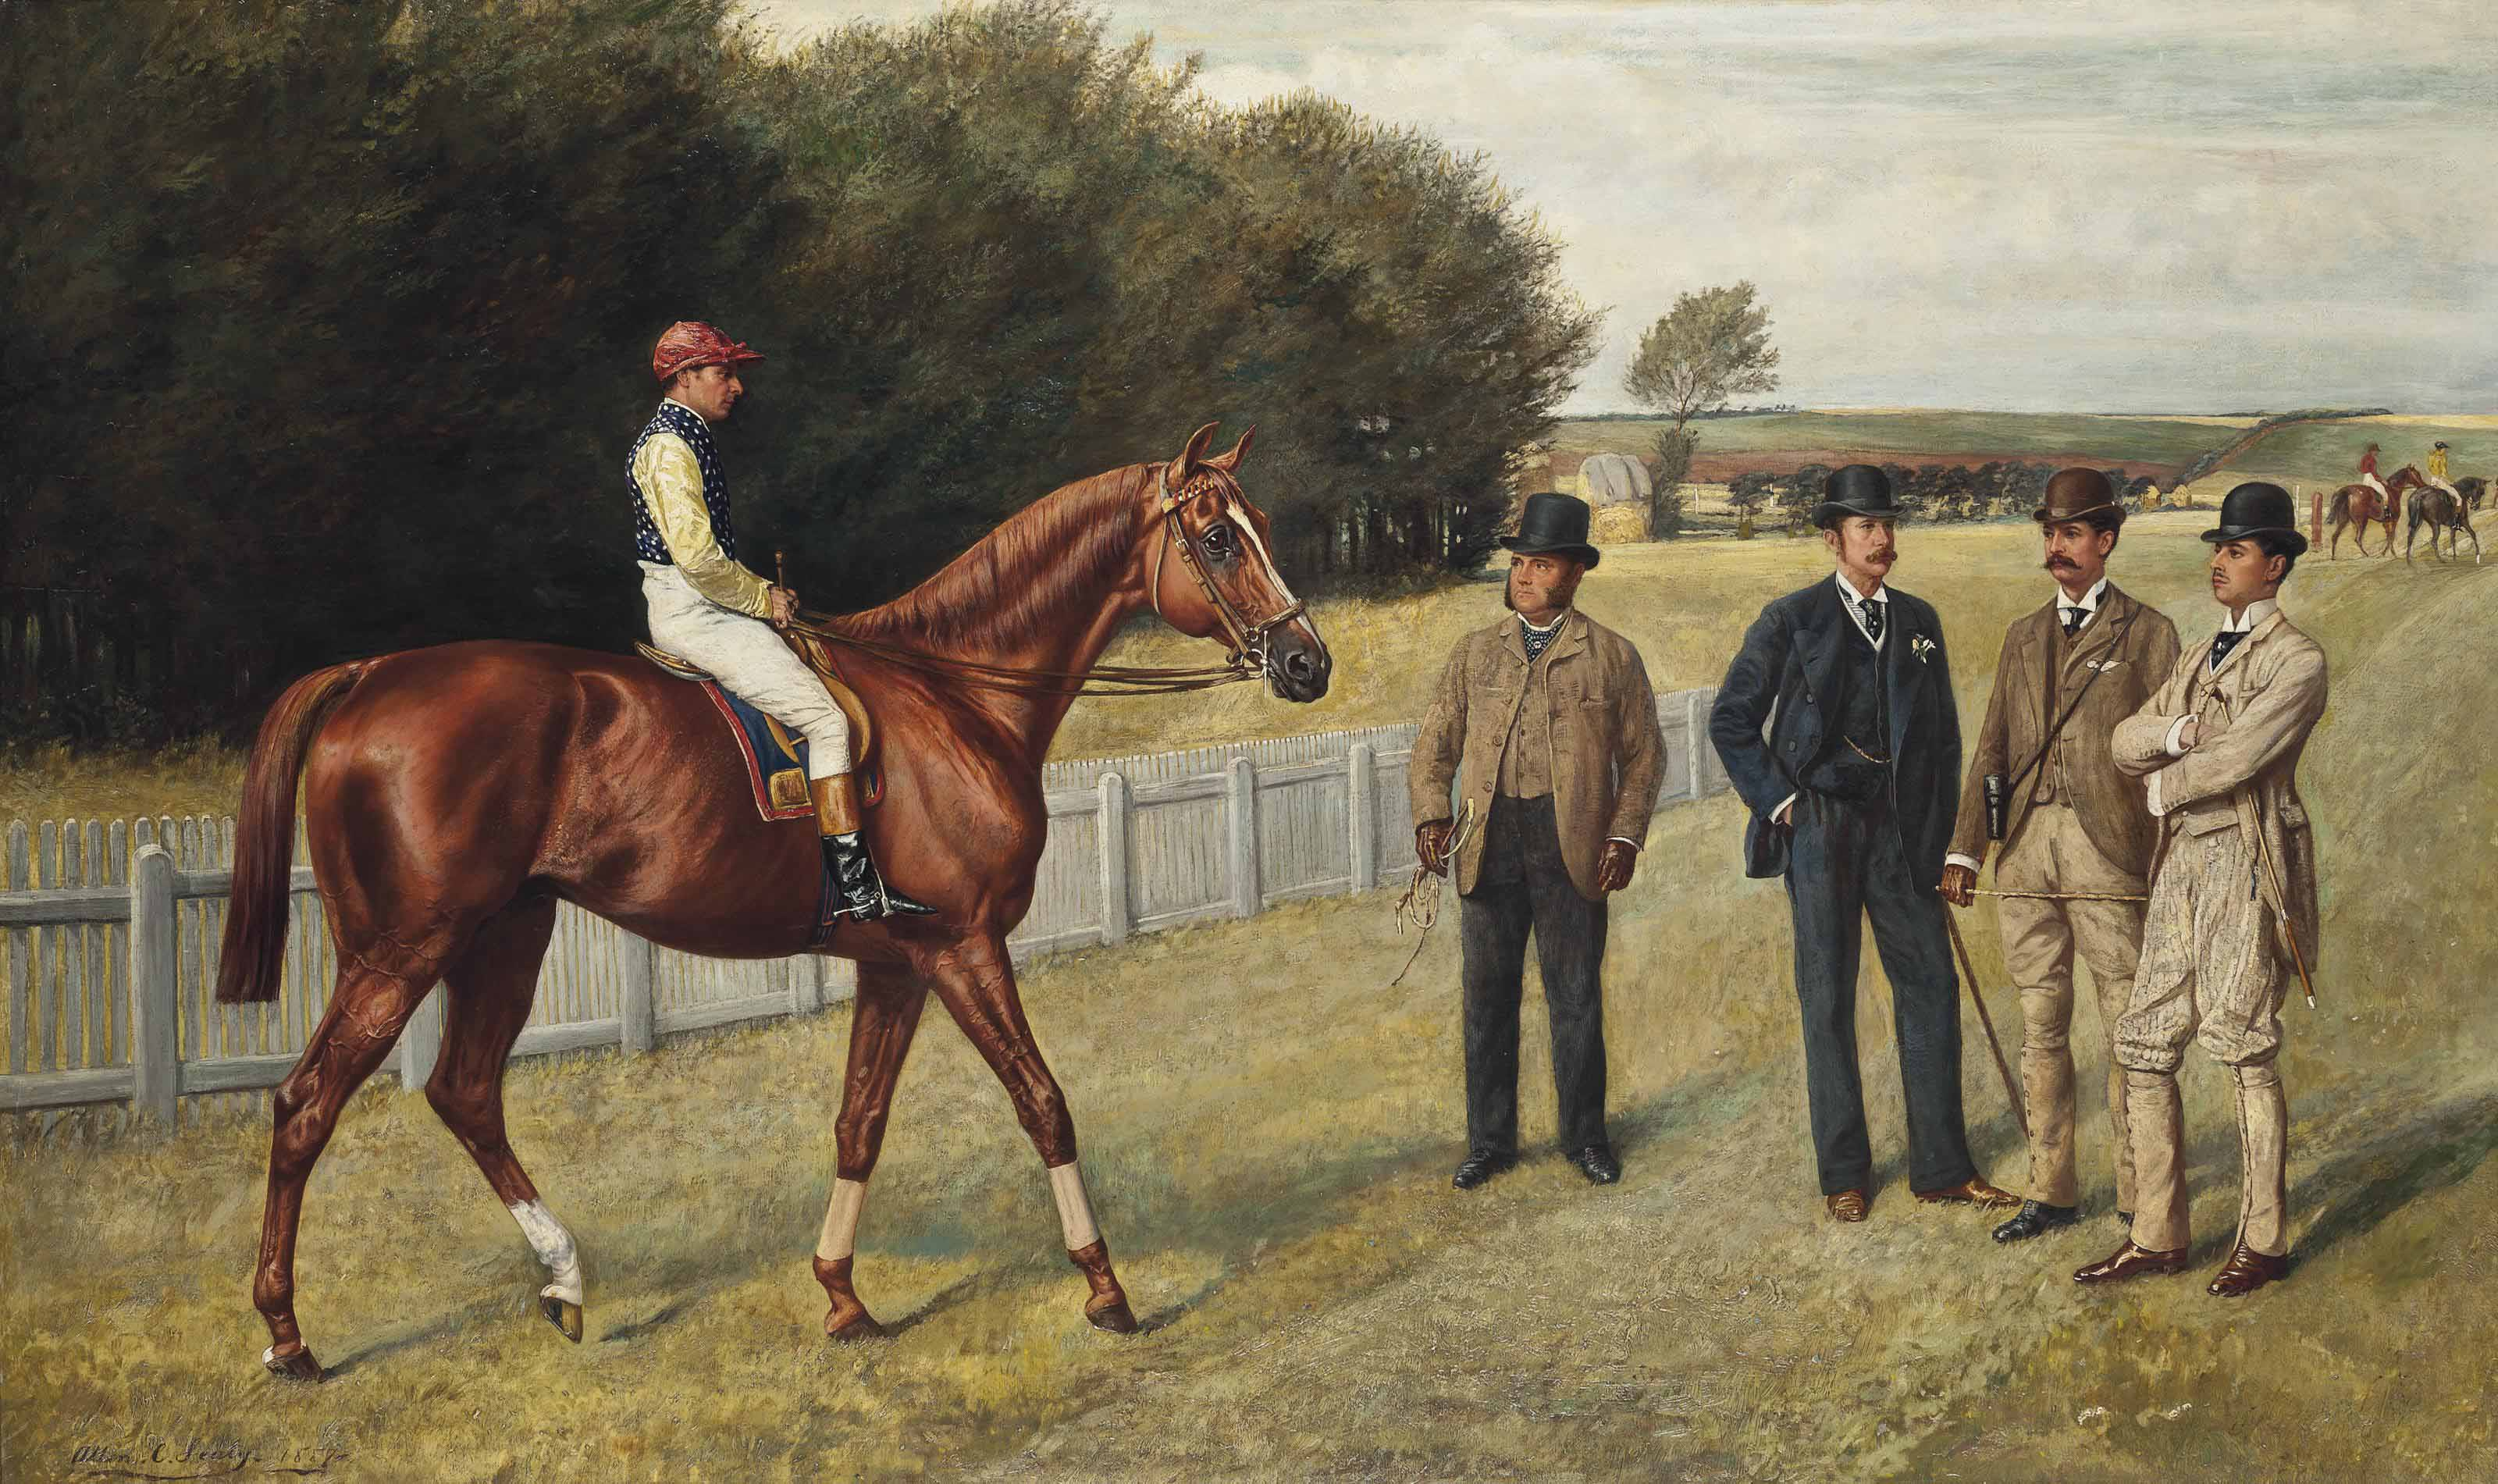 The racehorse Kingswood with C. Wood up, the trainer Sherrad and Sir G. Chetwynnd, Bart., Lord Lurgan, and Mr E.H. Benson standing nearby